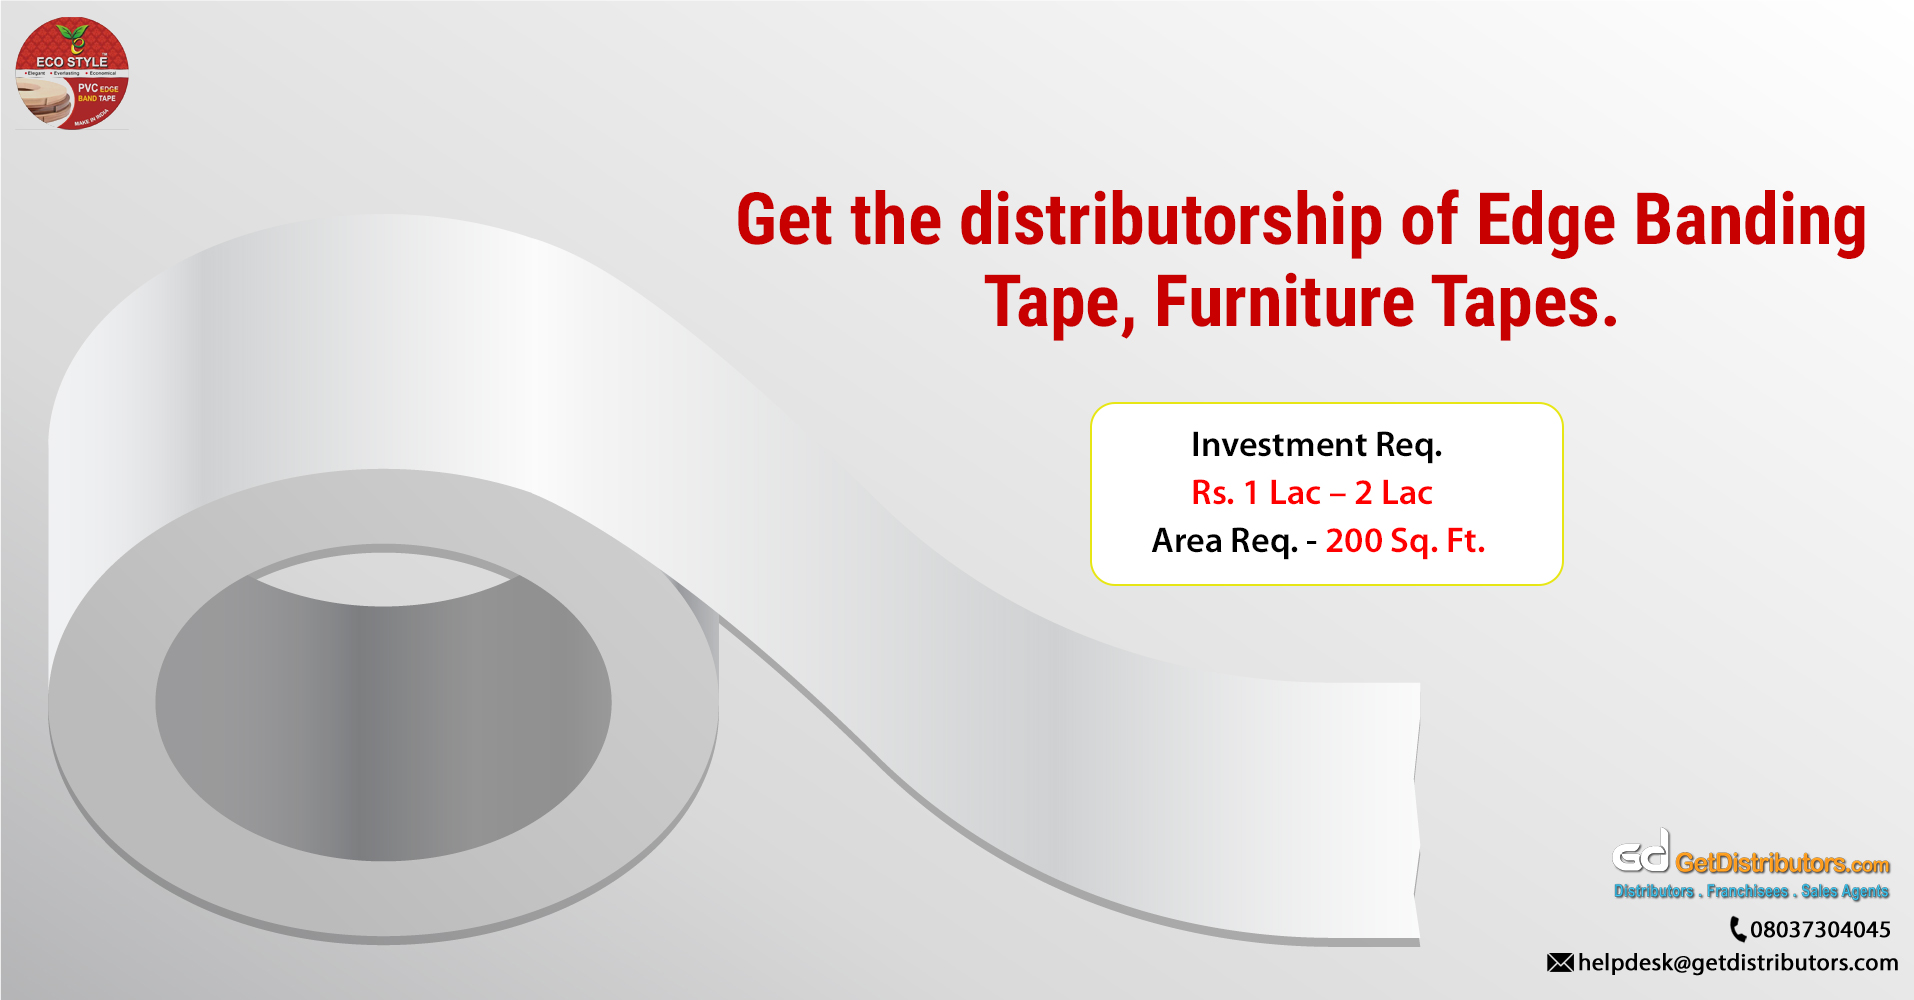 Offering a wide range of tapes for distribution